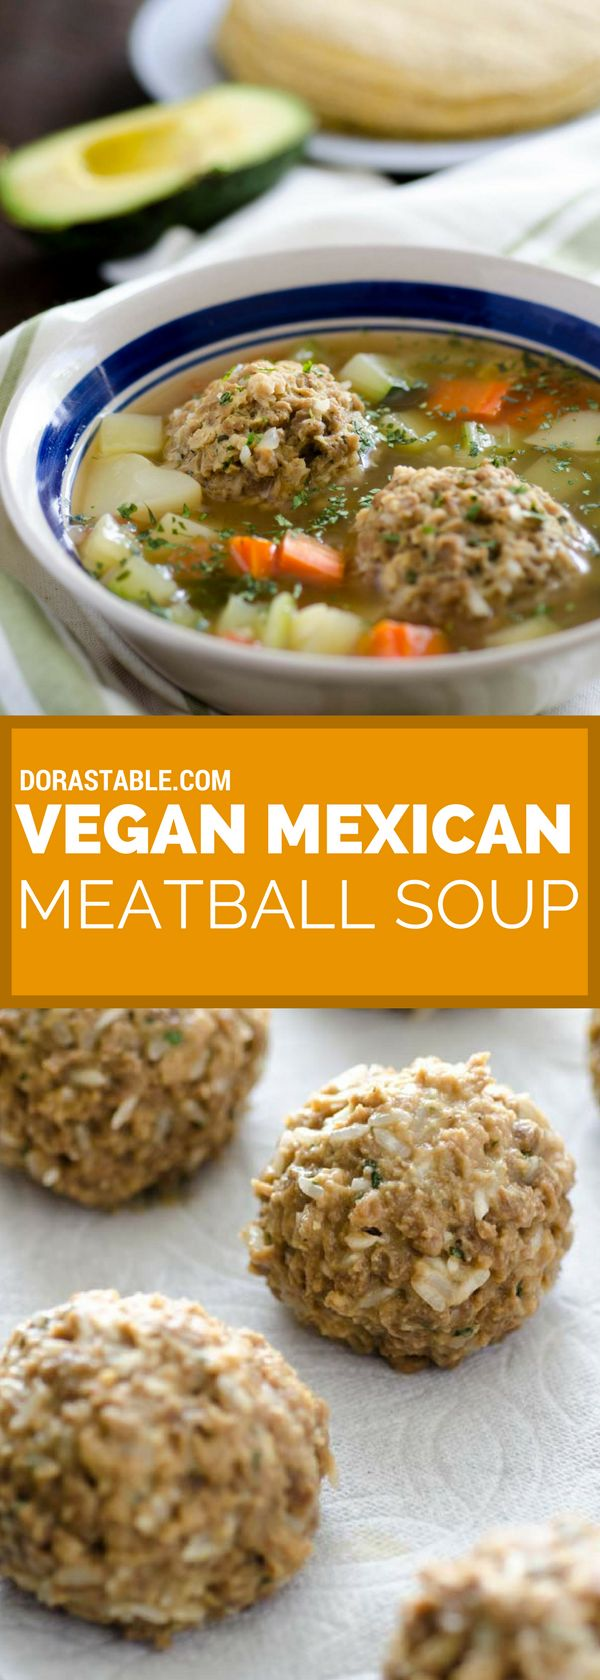 This vegan Mexican meatball soup is a hearty soup filled with carrots, potatoes, celery, and amazingly tender meatballs.